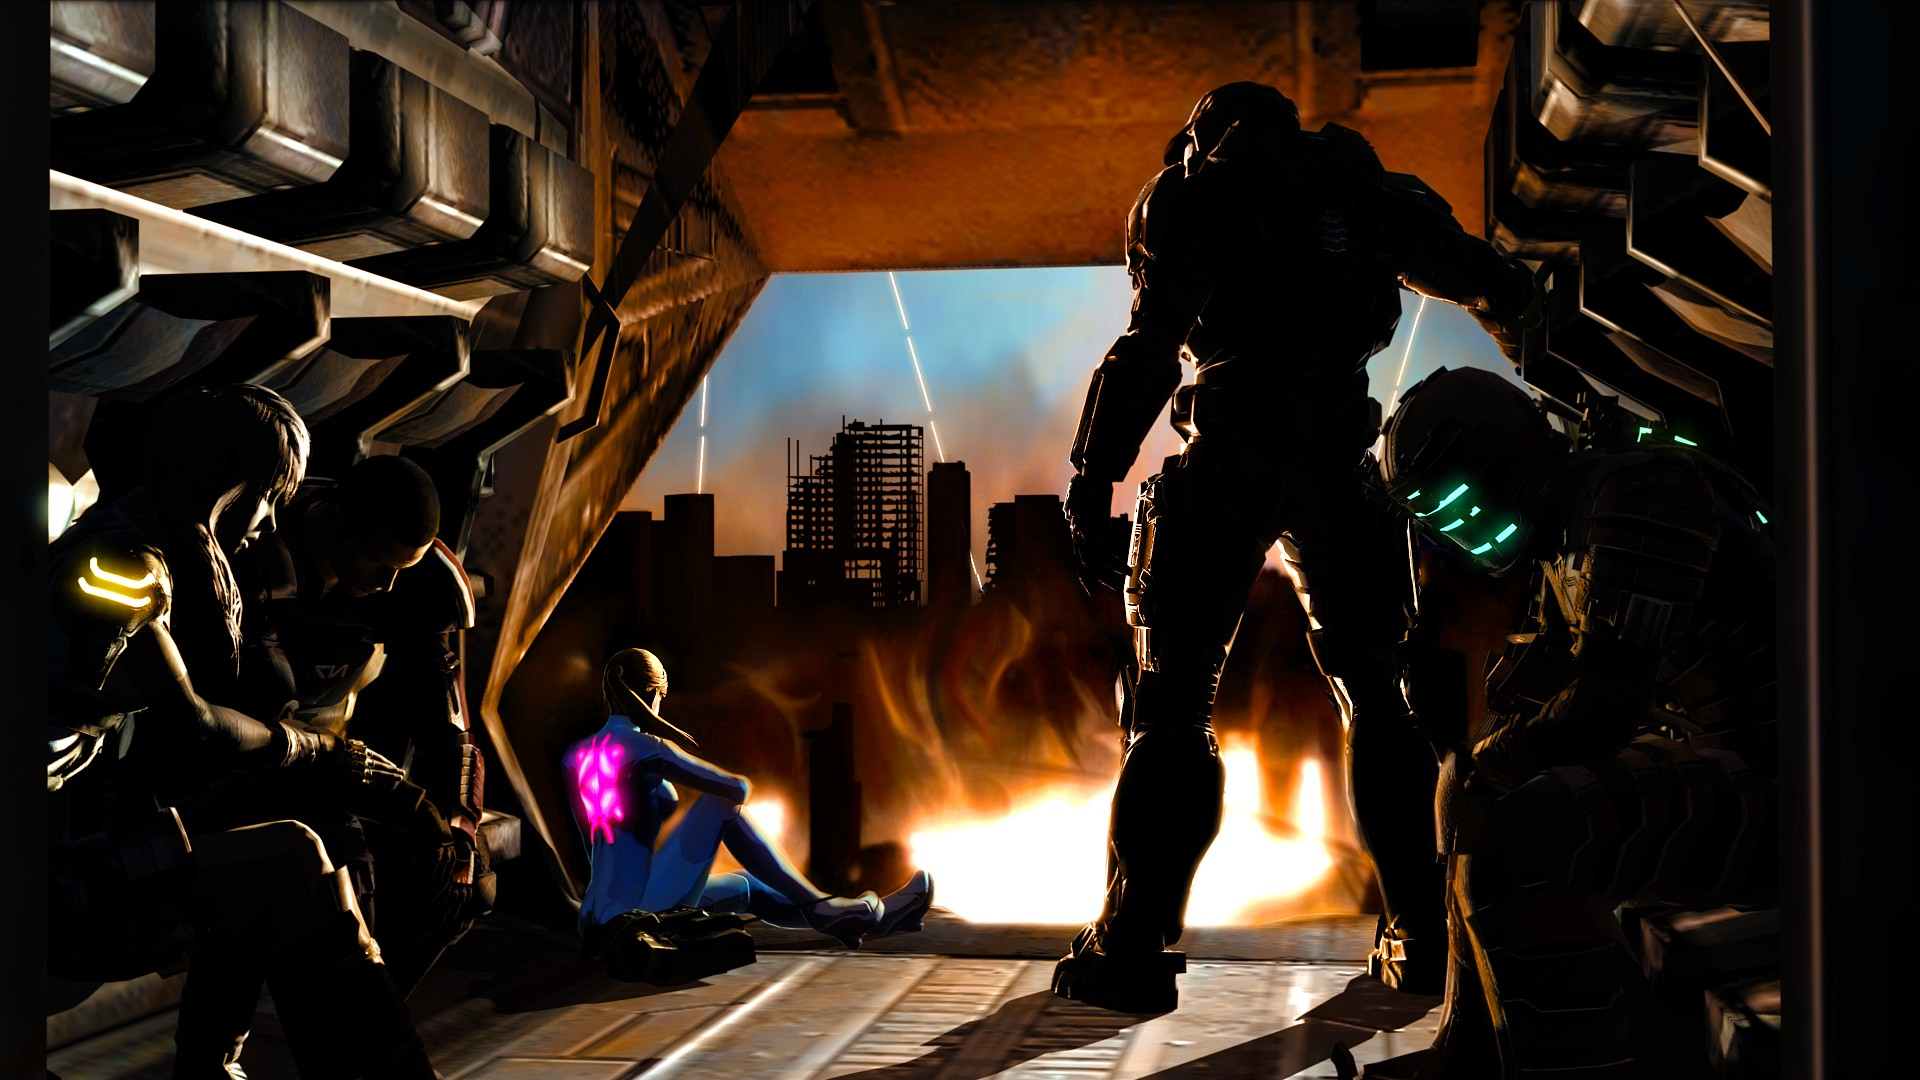 3d Effect Wallpaper For Mobile Dead Space Mass Effect Final Fantasy Xiii Halo Metroid